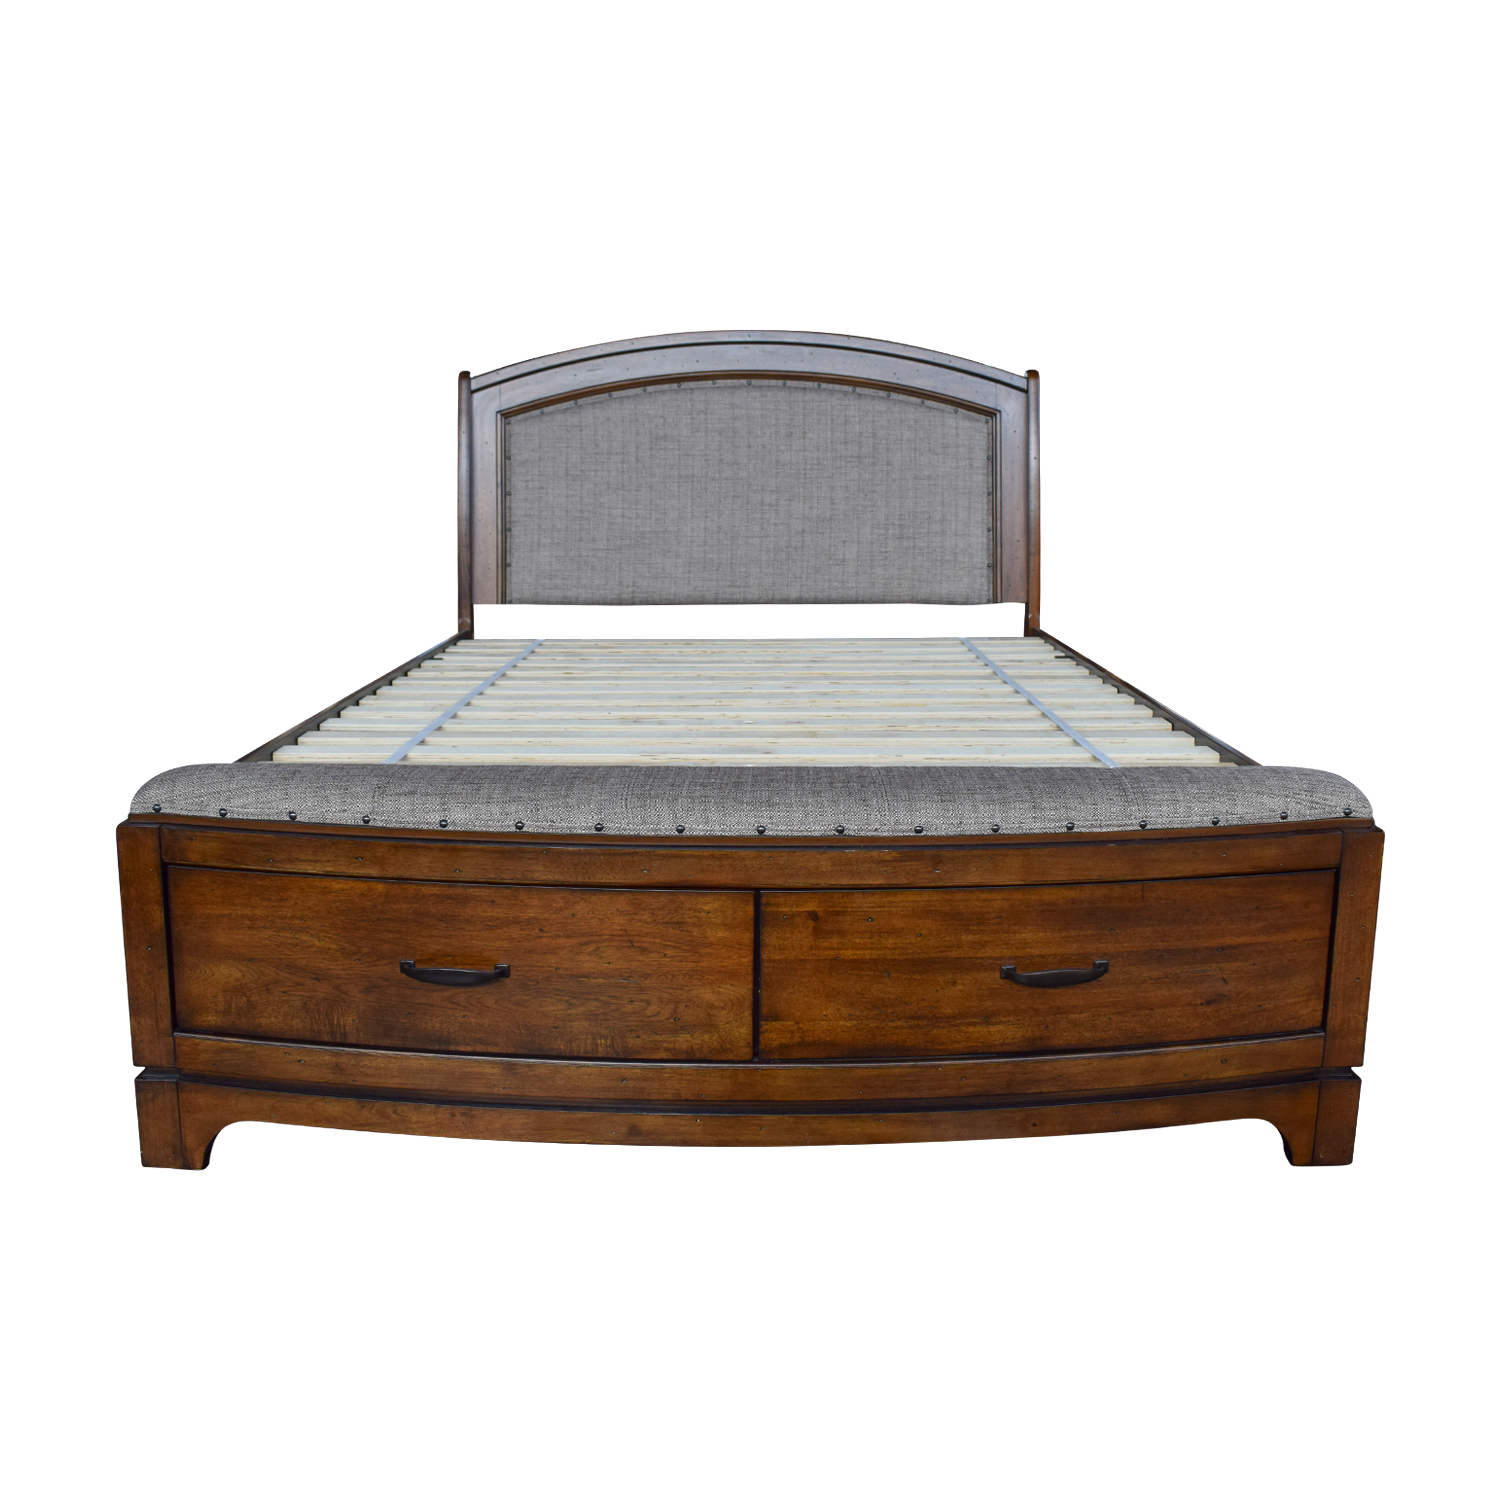 Queen Tufted Wooden Storage Bed coupon